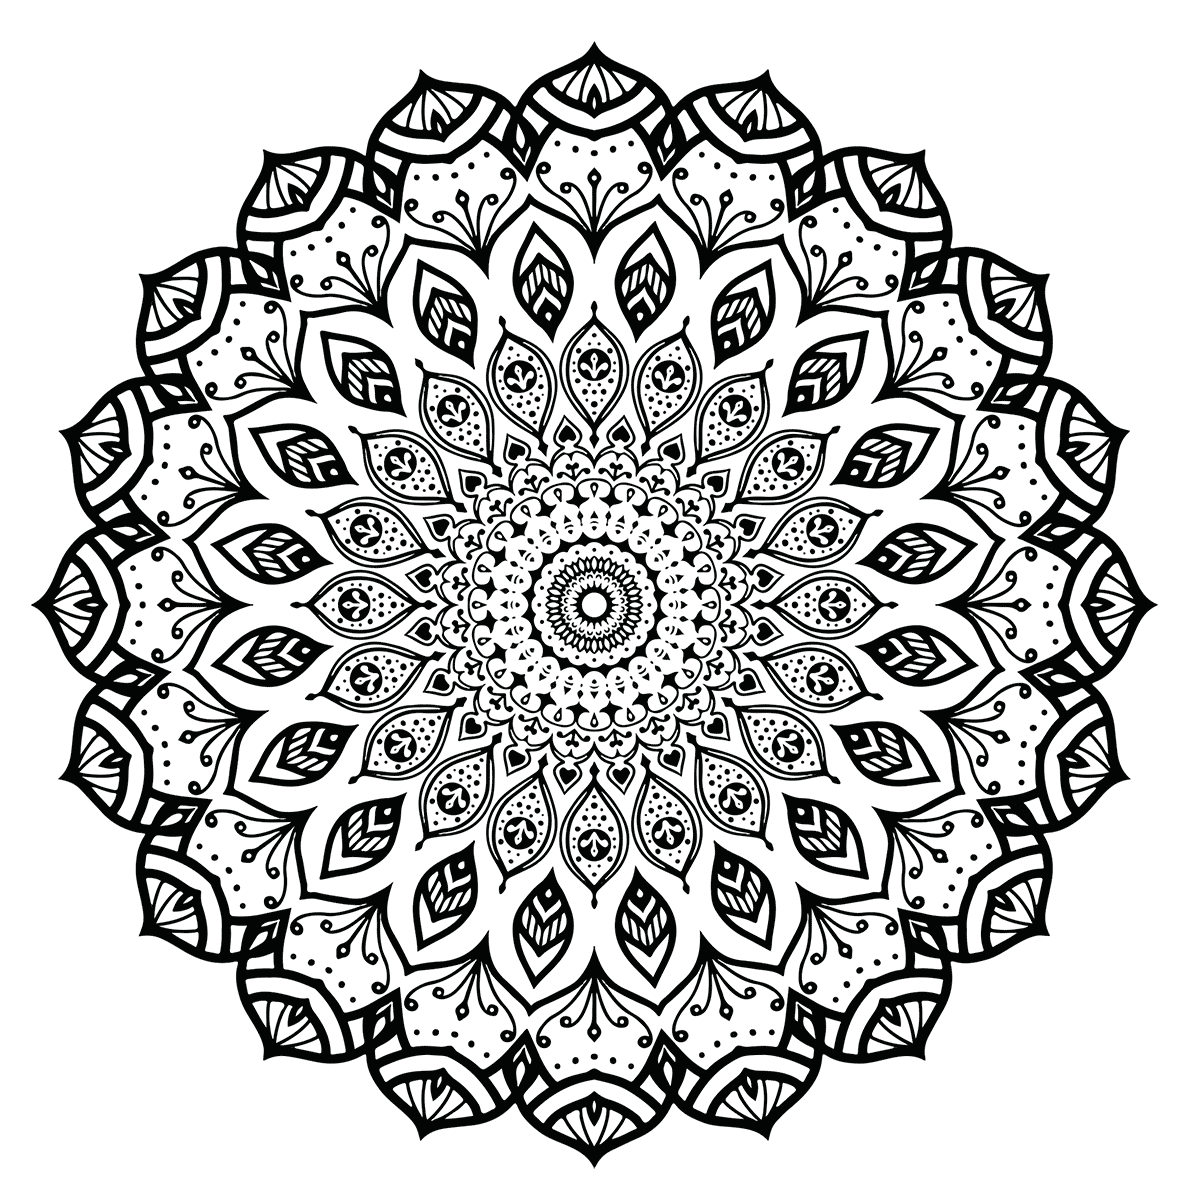 modern mandala coloring page - Intricate Mandalas Coloring Pages